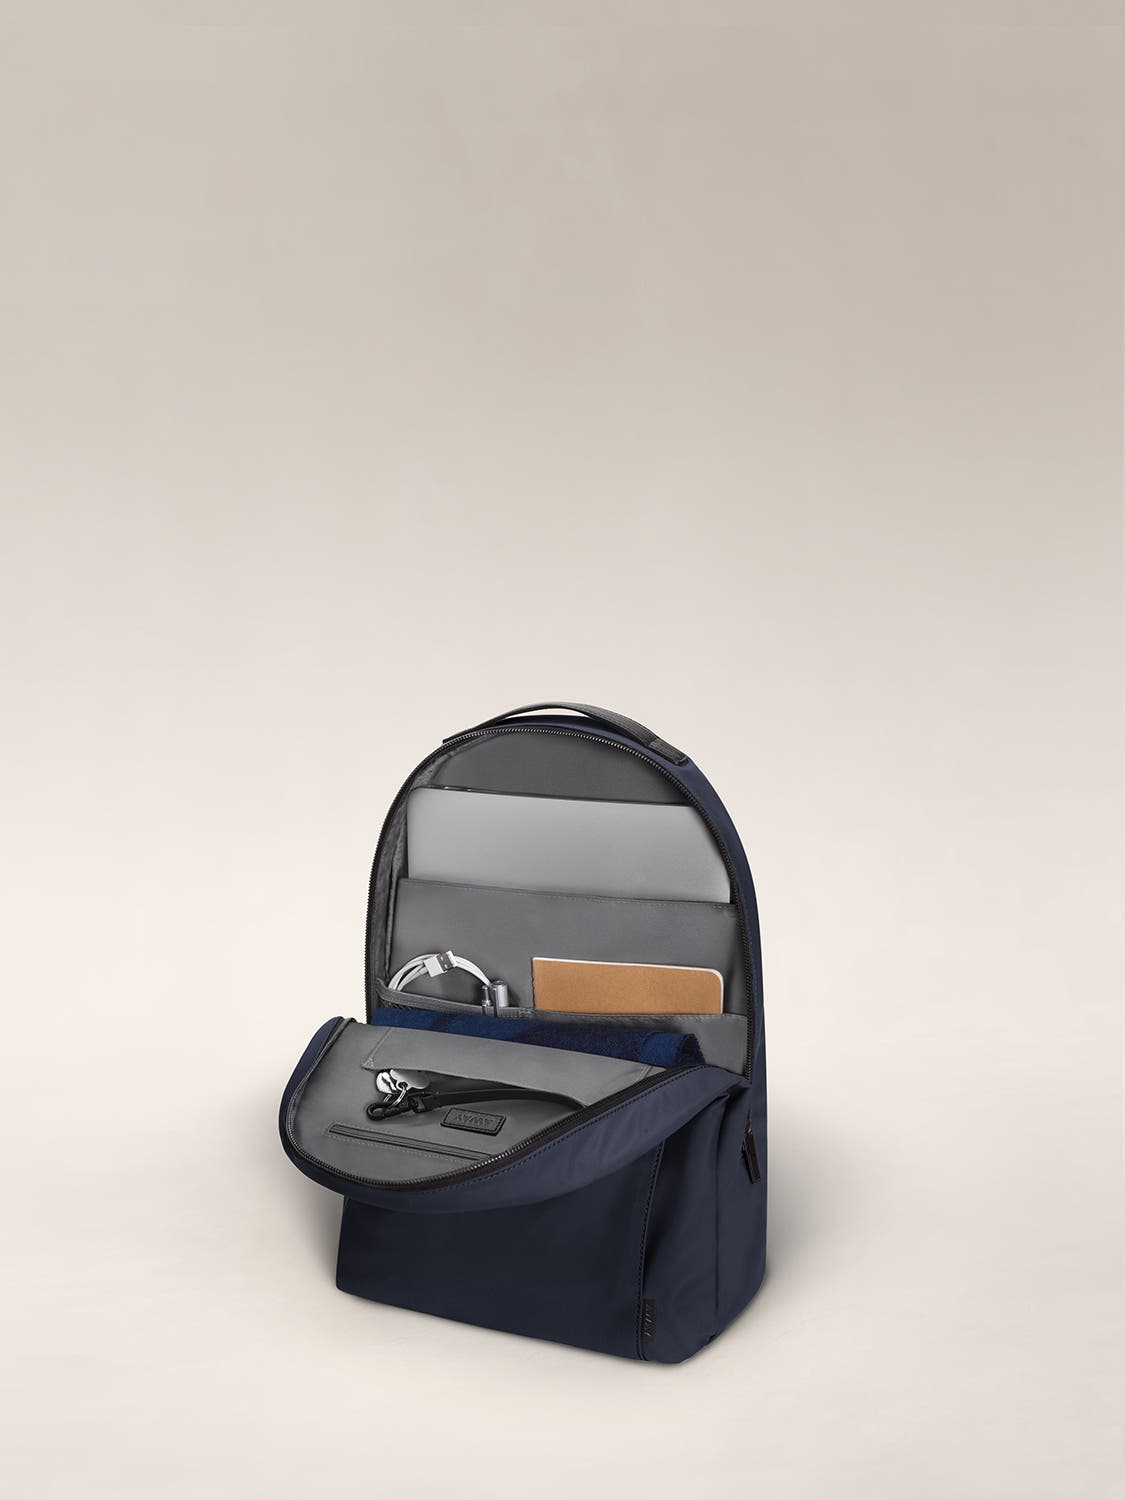 Navy daypack with organized pockets showing a laptop, notebooks and headphone.